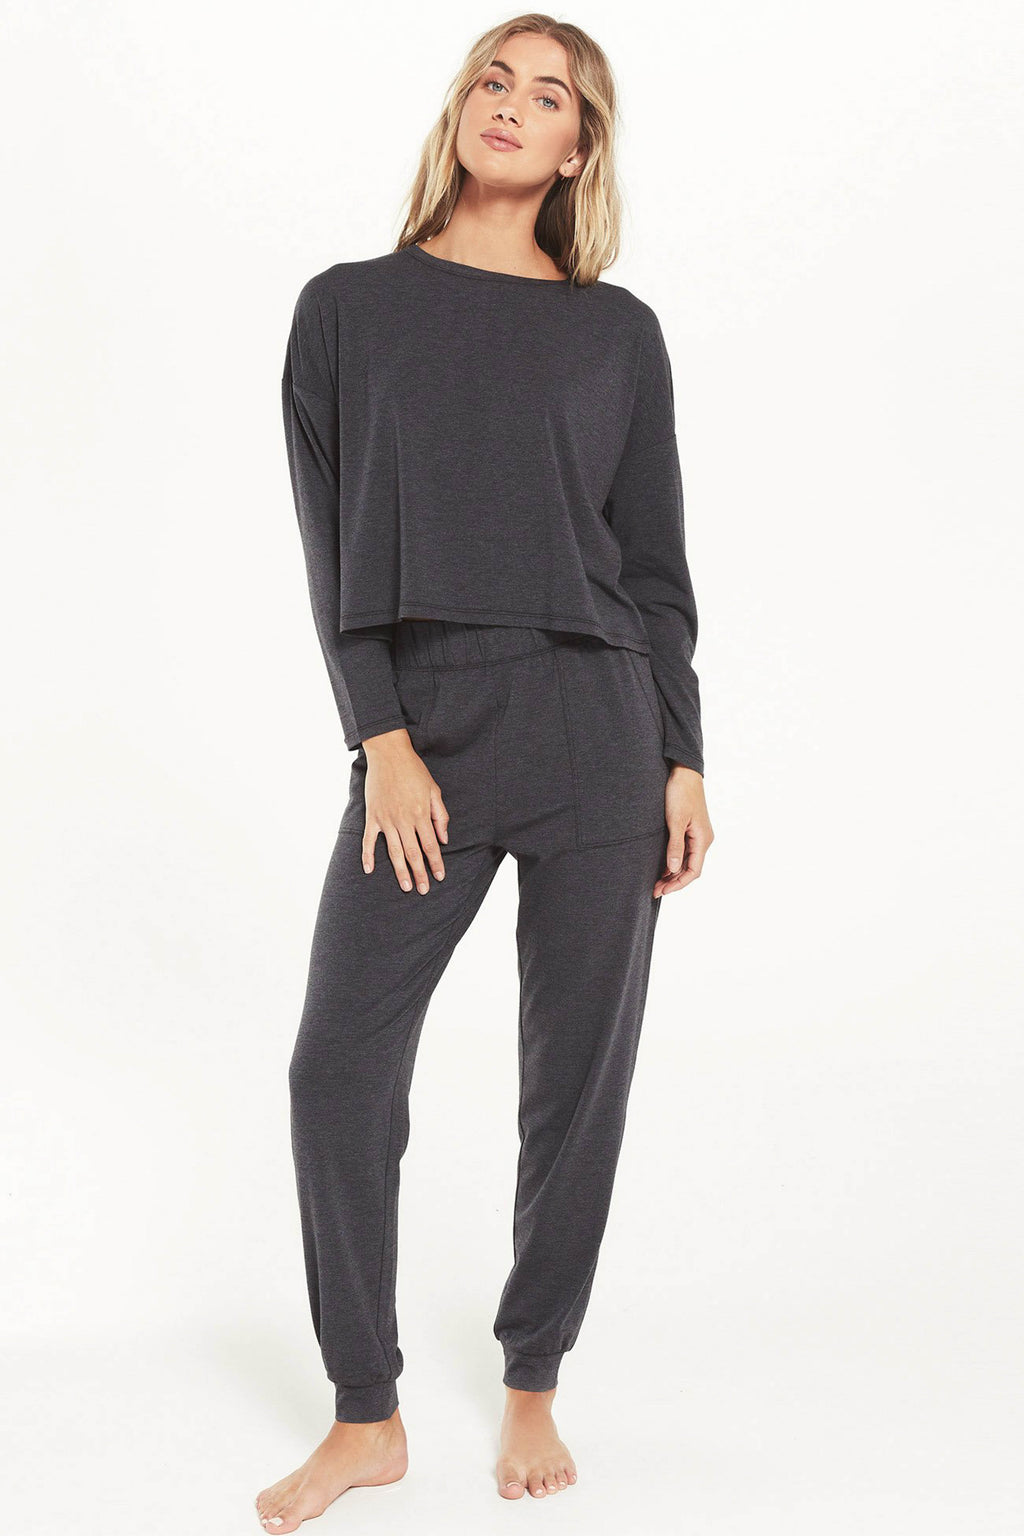 Z SUPPLY </br>Feel Good Pullover & Jogger Lounge Set